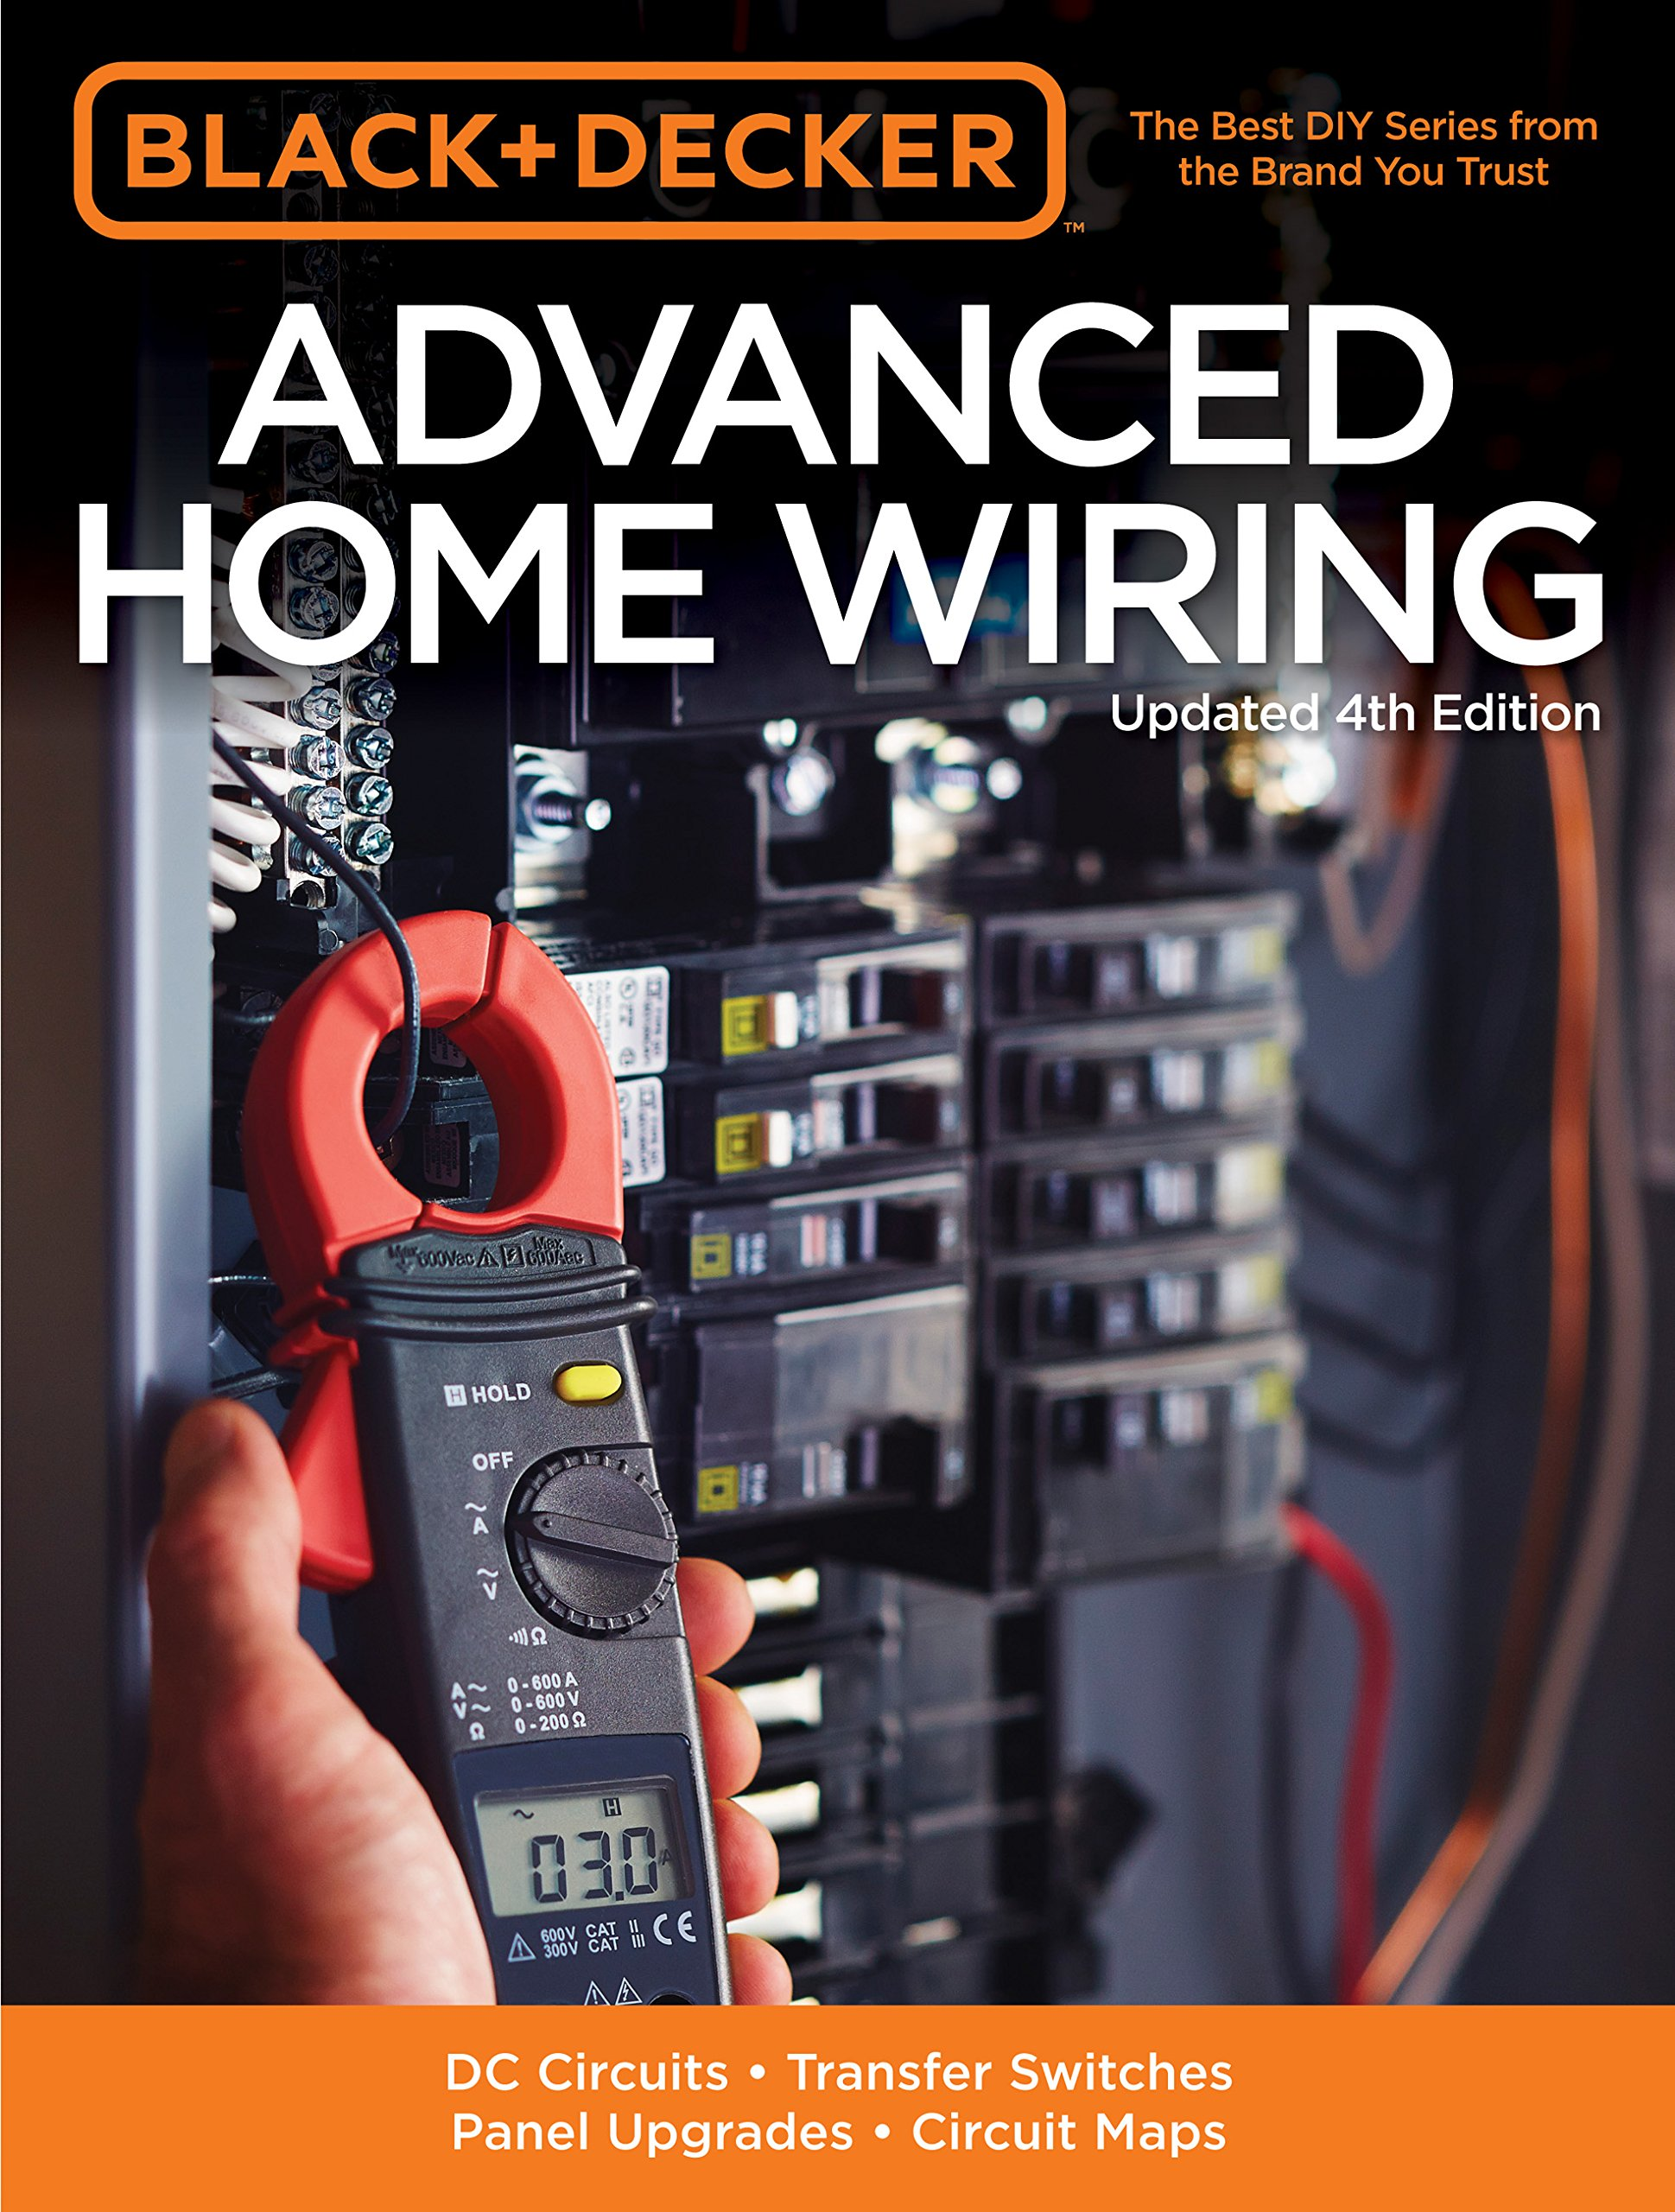 Black Decker Advanced Home Wiring Updated 4th Edition Dc Electric Circuit Design Group Picture Image By Tag Circuits Transfer Switches Panel Upgrades Maps More Editors Of Cool Springs